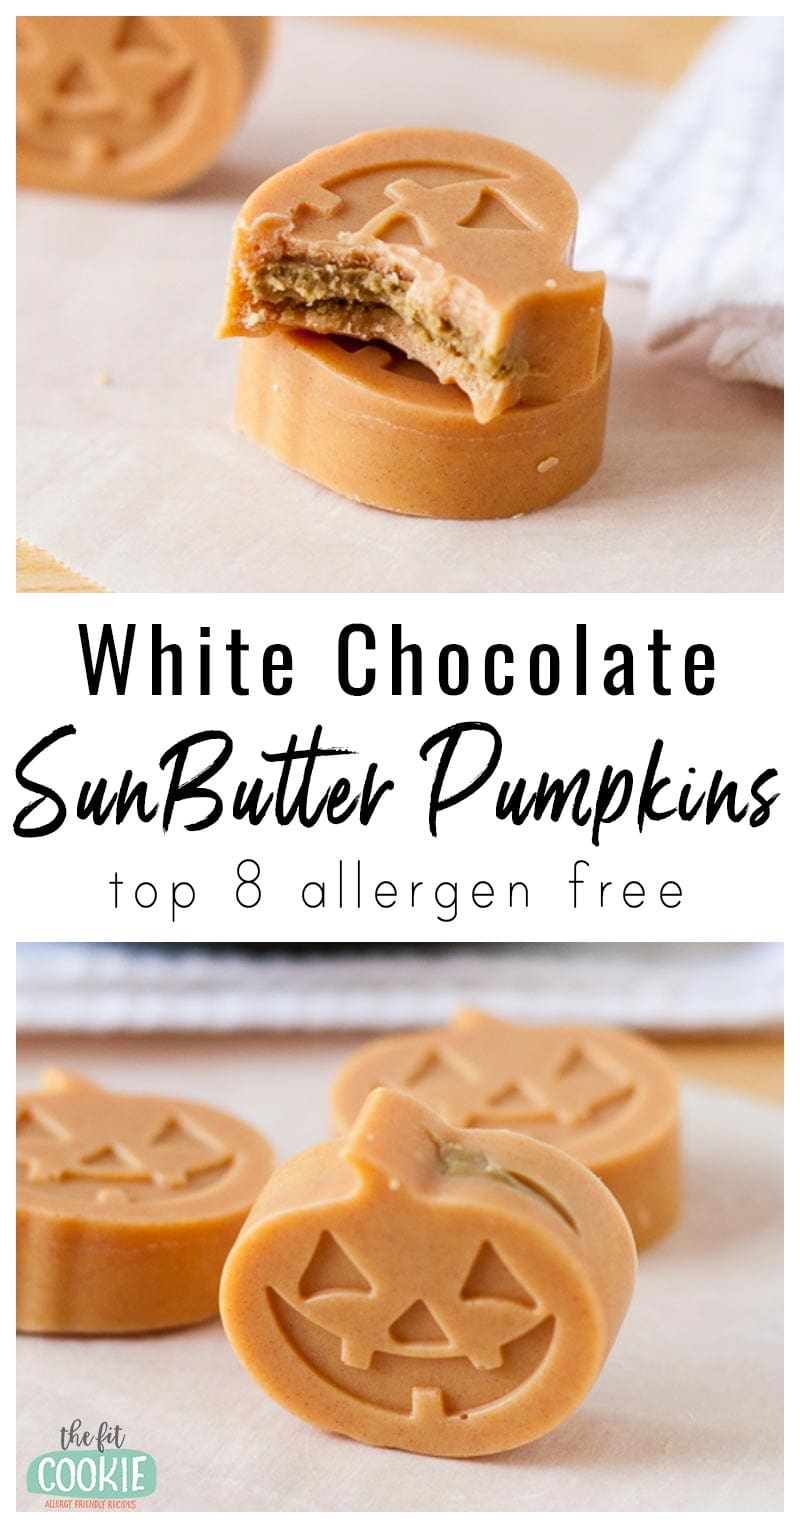 photo collage of dairy free white chocolate sunbutter pumpkins